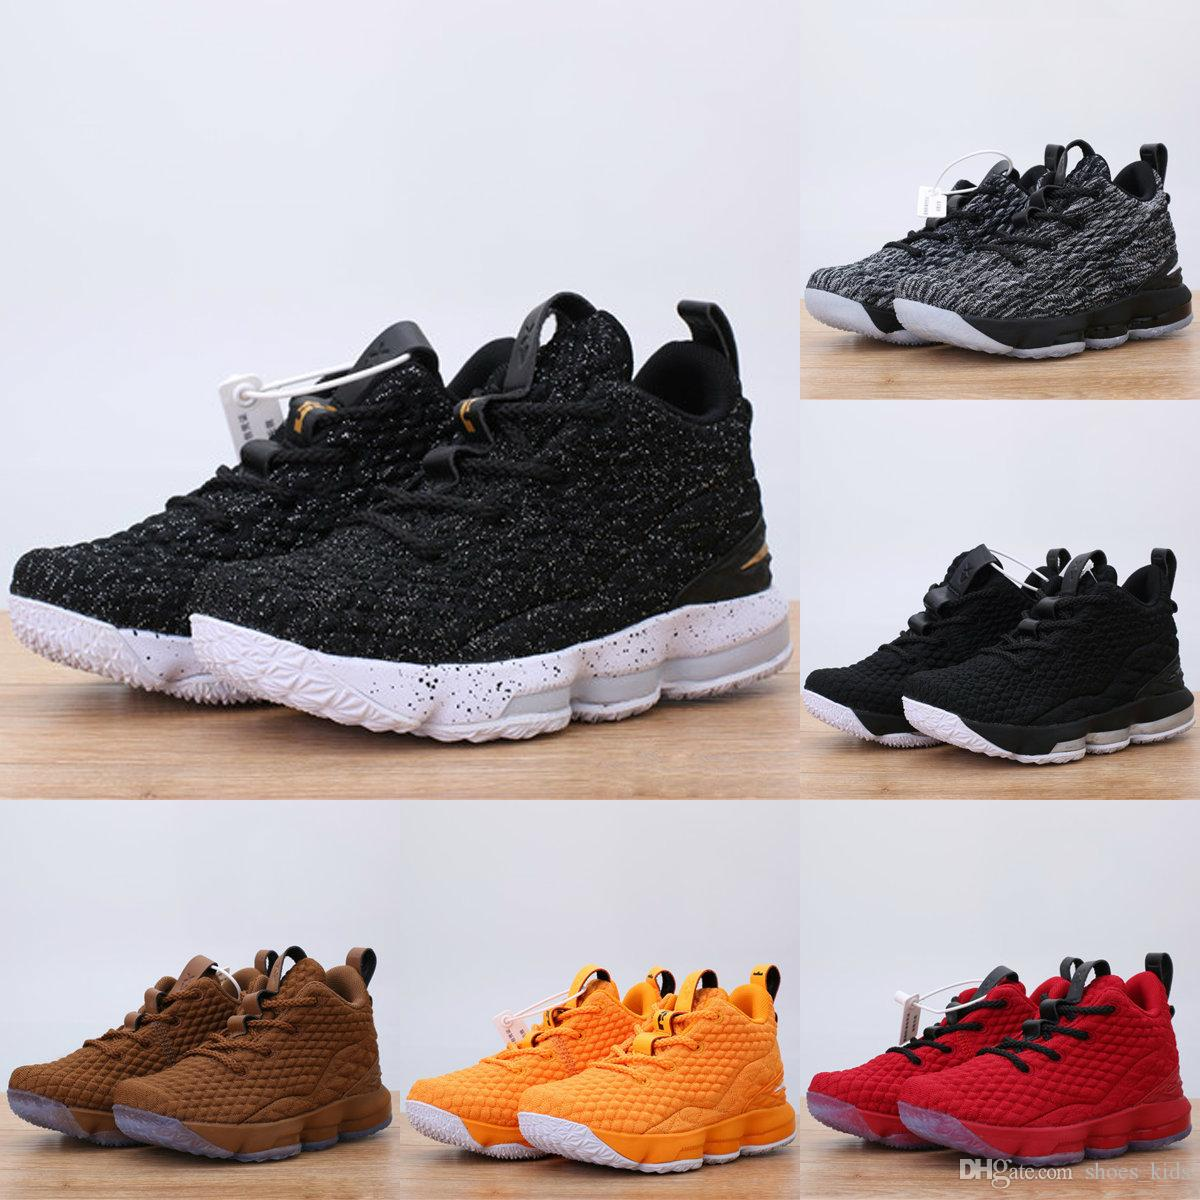 1fb10533201 ... discount 2018 new kids basketball shoes ashes ghost lebron 15 red black  lebrons boys training arrival